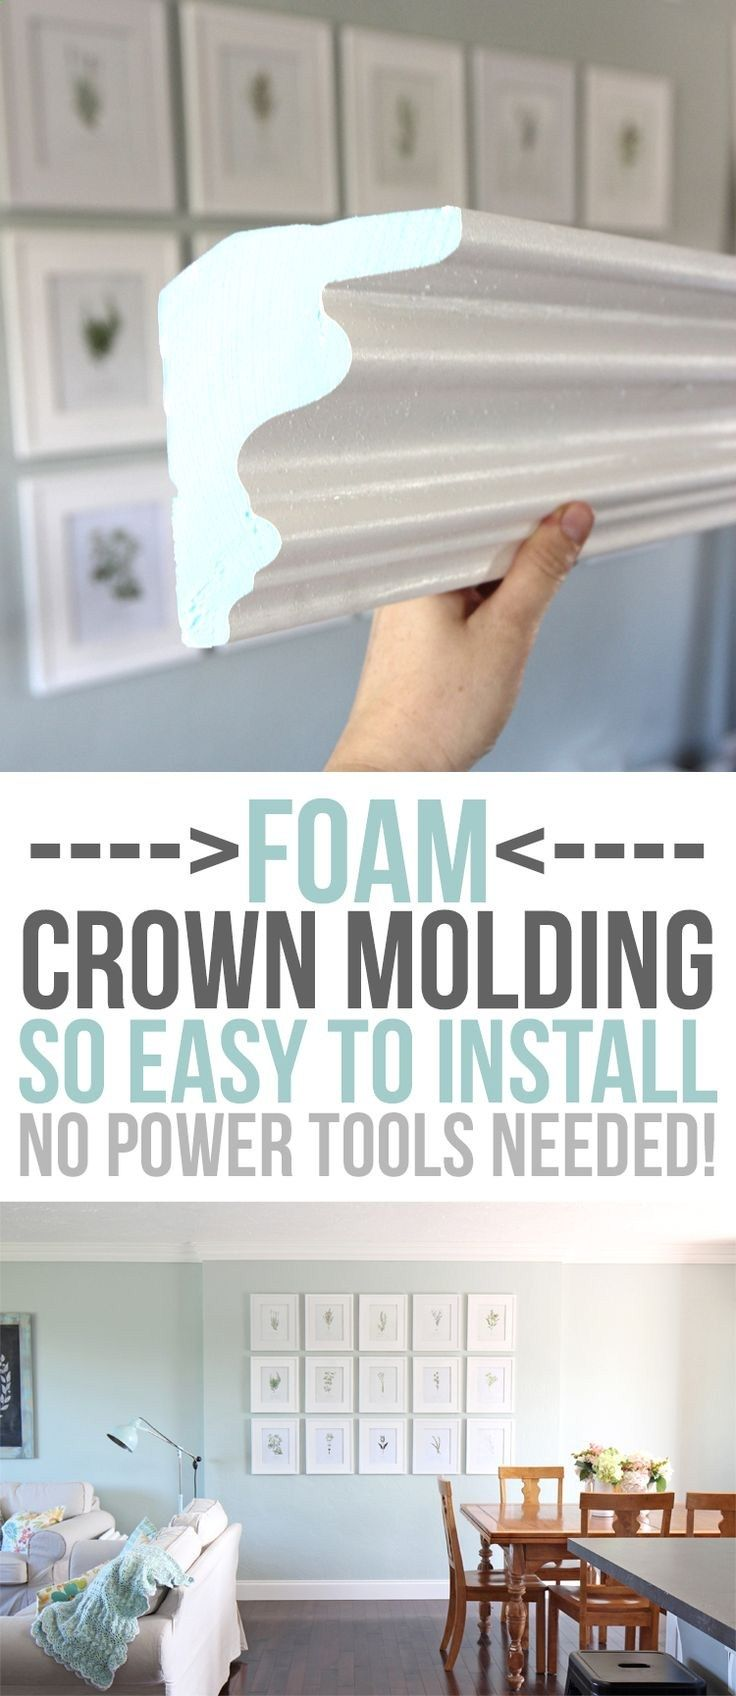 FOAM crown molding is easier to install than traditional molding, but once its up, it looks the same! No power tools required, it is installed with glue. Pre-made corners available too! DIY home upgrades for the beginning remodeler.